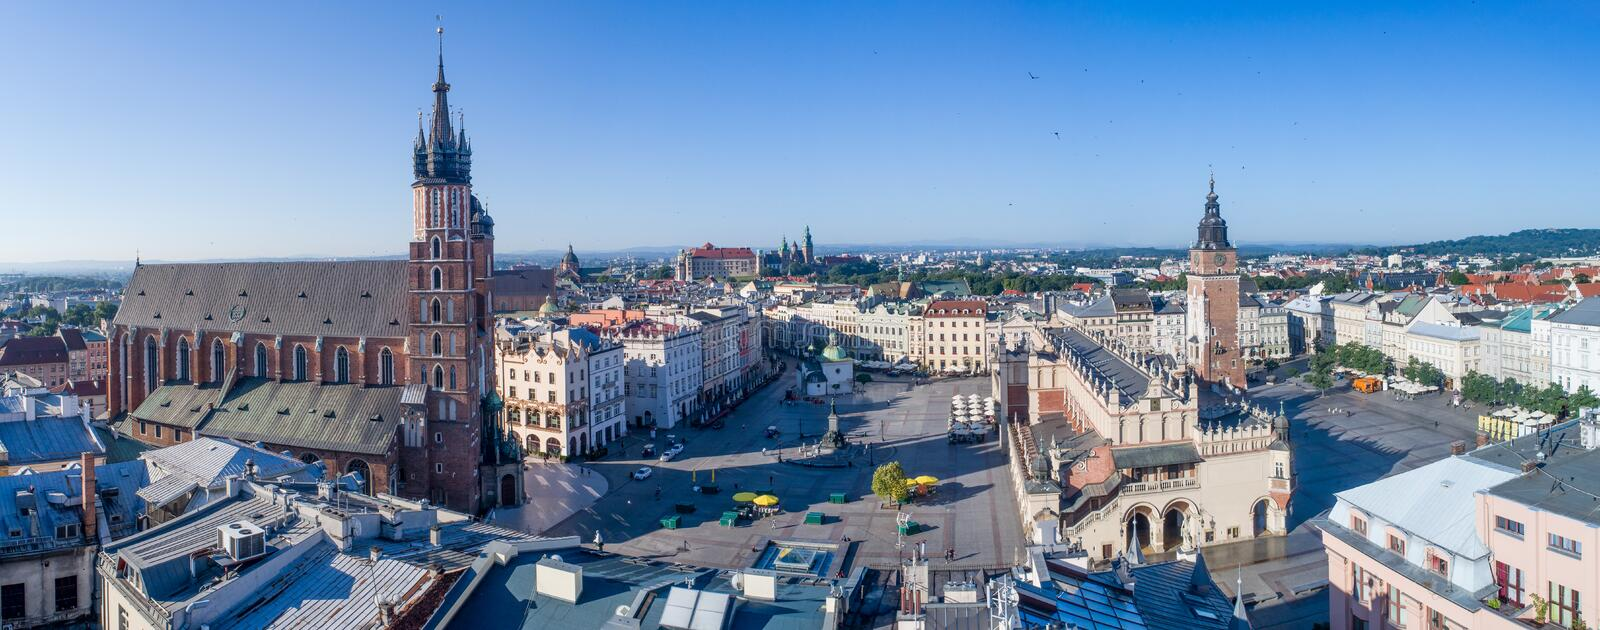 Krakow, Poland. Old city wide panorama with all main monuments stock photography